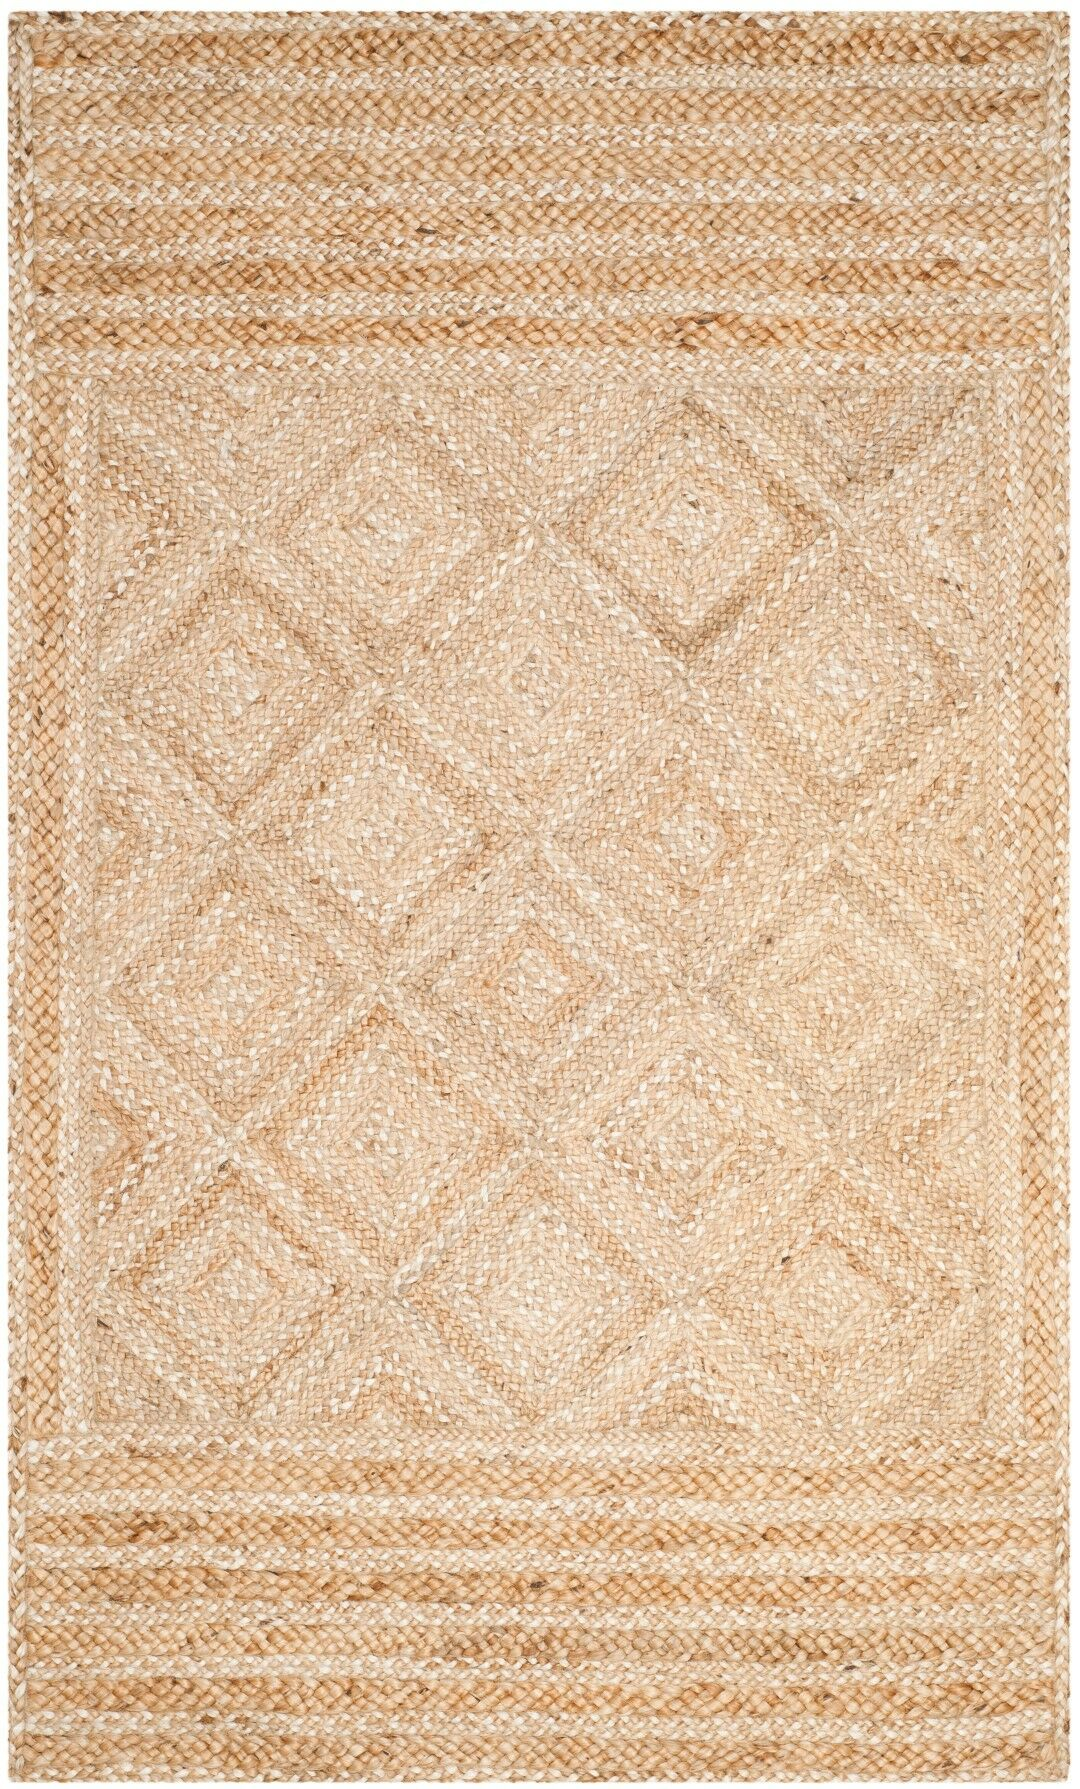 Leonard Hand-Woven Natural Area Rug Rug Size: Rectangle 5' x 8'